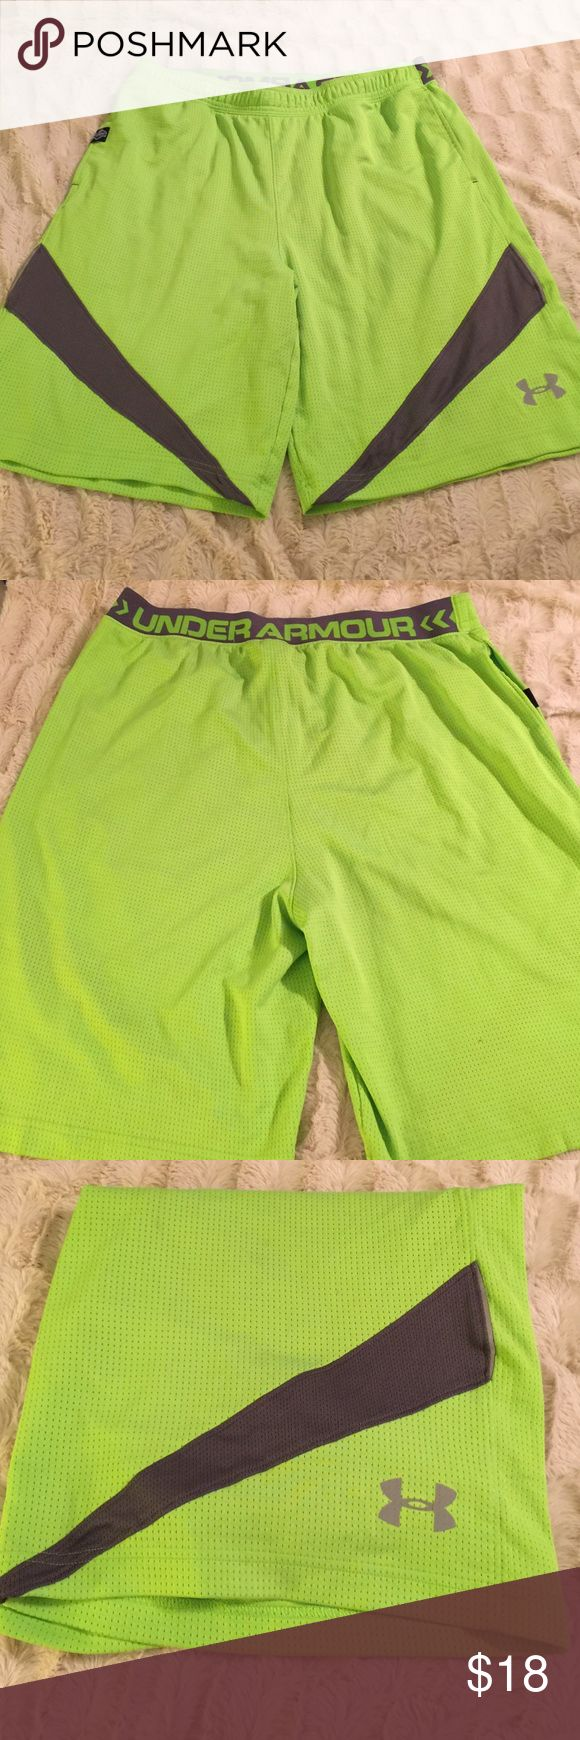 XL Under Armour green and gray shorts XL Under Armour neon green and gray NFL shorts Under Armour Shorts Athletic